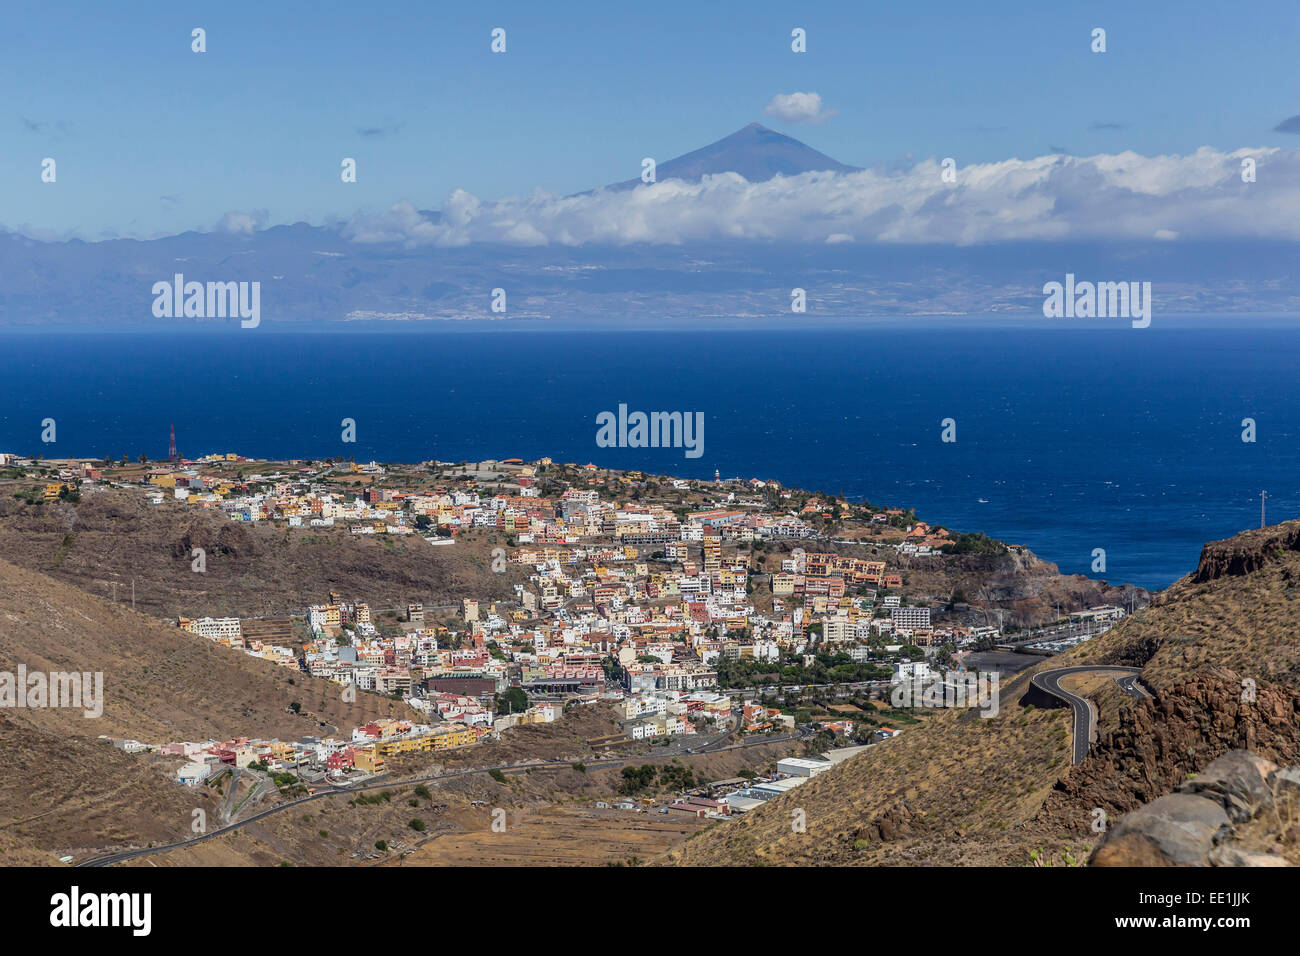 A view of the island of La Gomera, the second smallest island in the Canary Islands, Spain, Atlantic, Europe - Stock Image